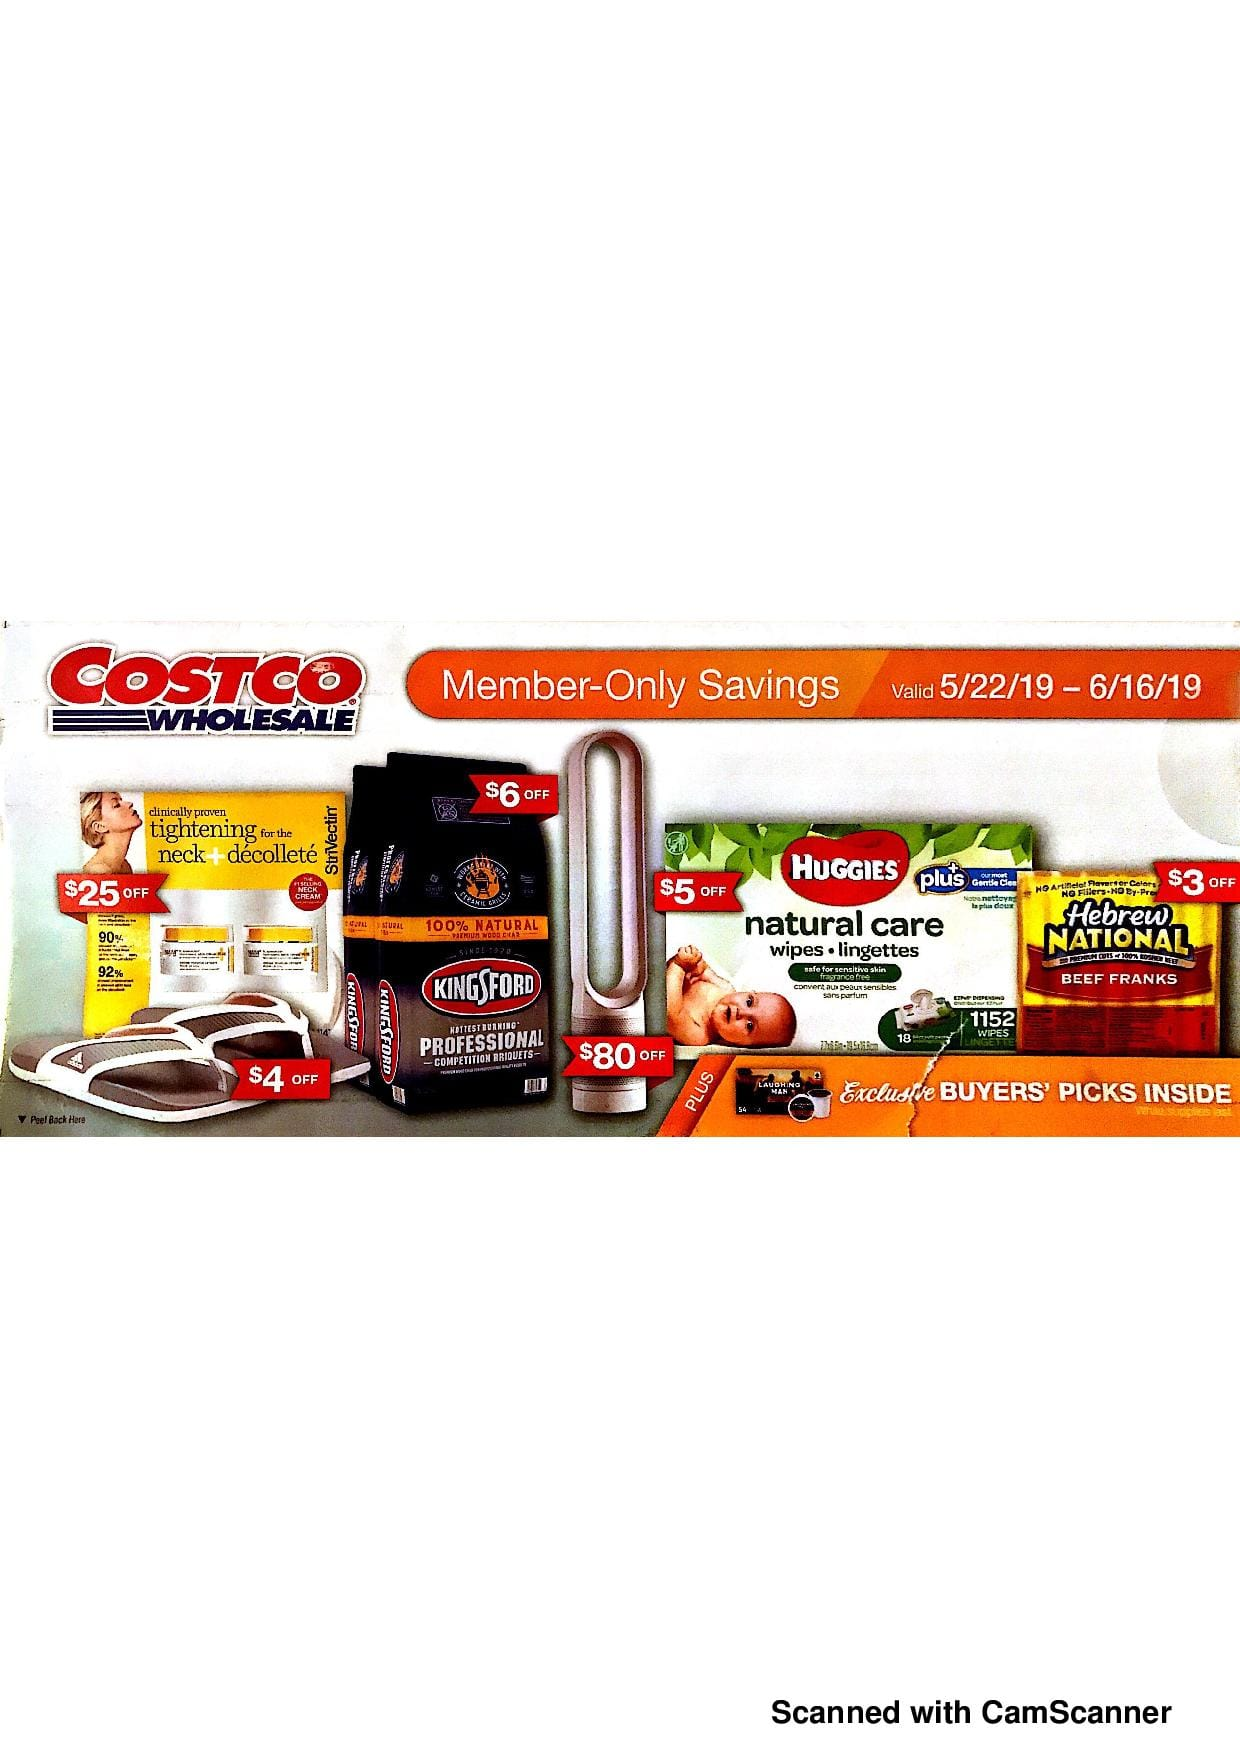 Costco May 2019 Coupon Book | May 22 - June 16, 2019